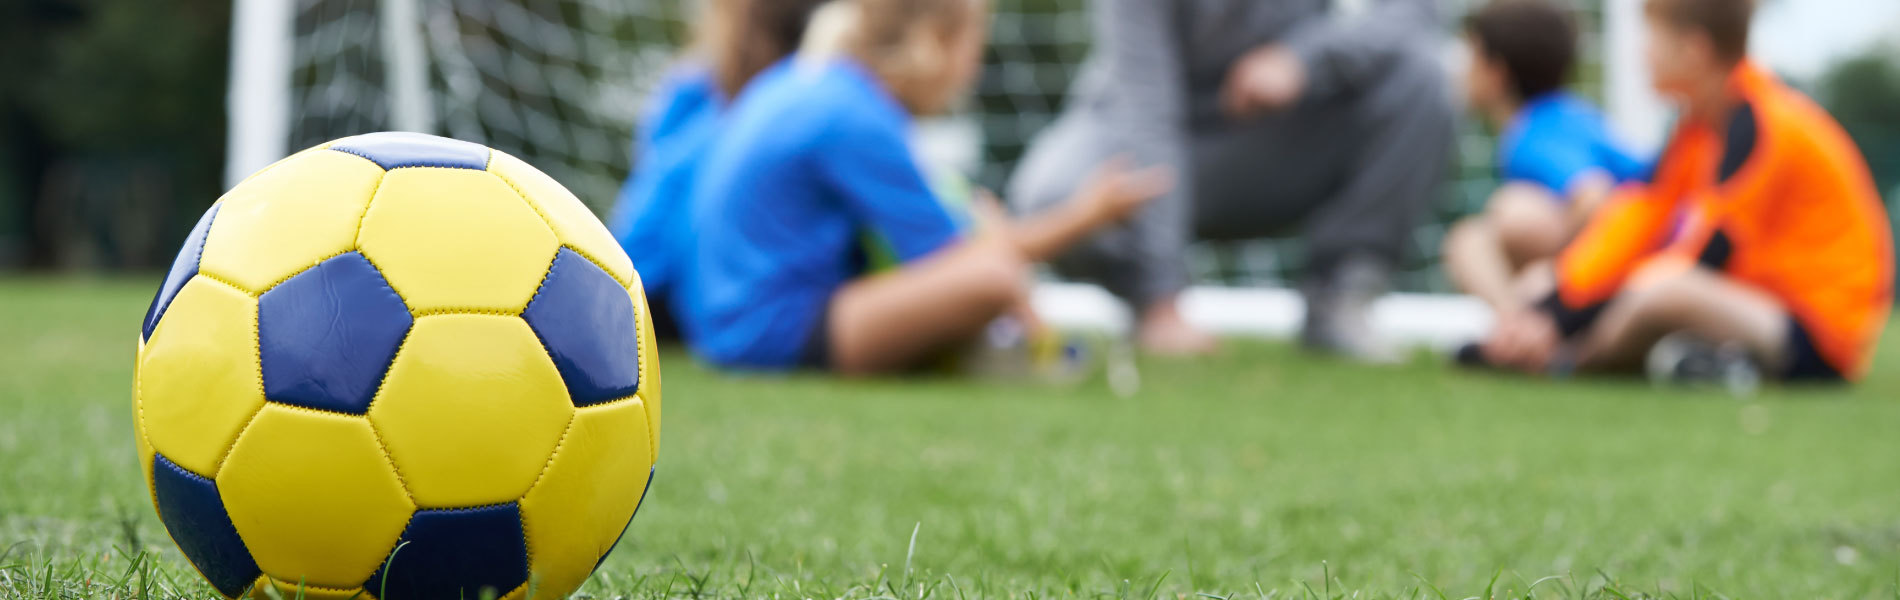 The_Many_Benefits_of_Youth_Sports_in_your_Community_1900x600.jpg